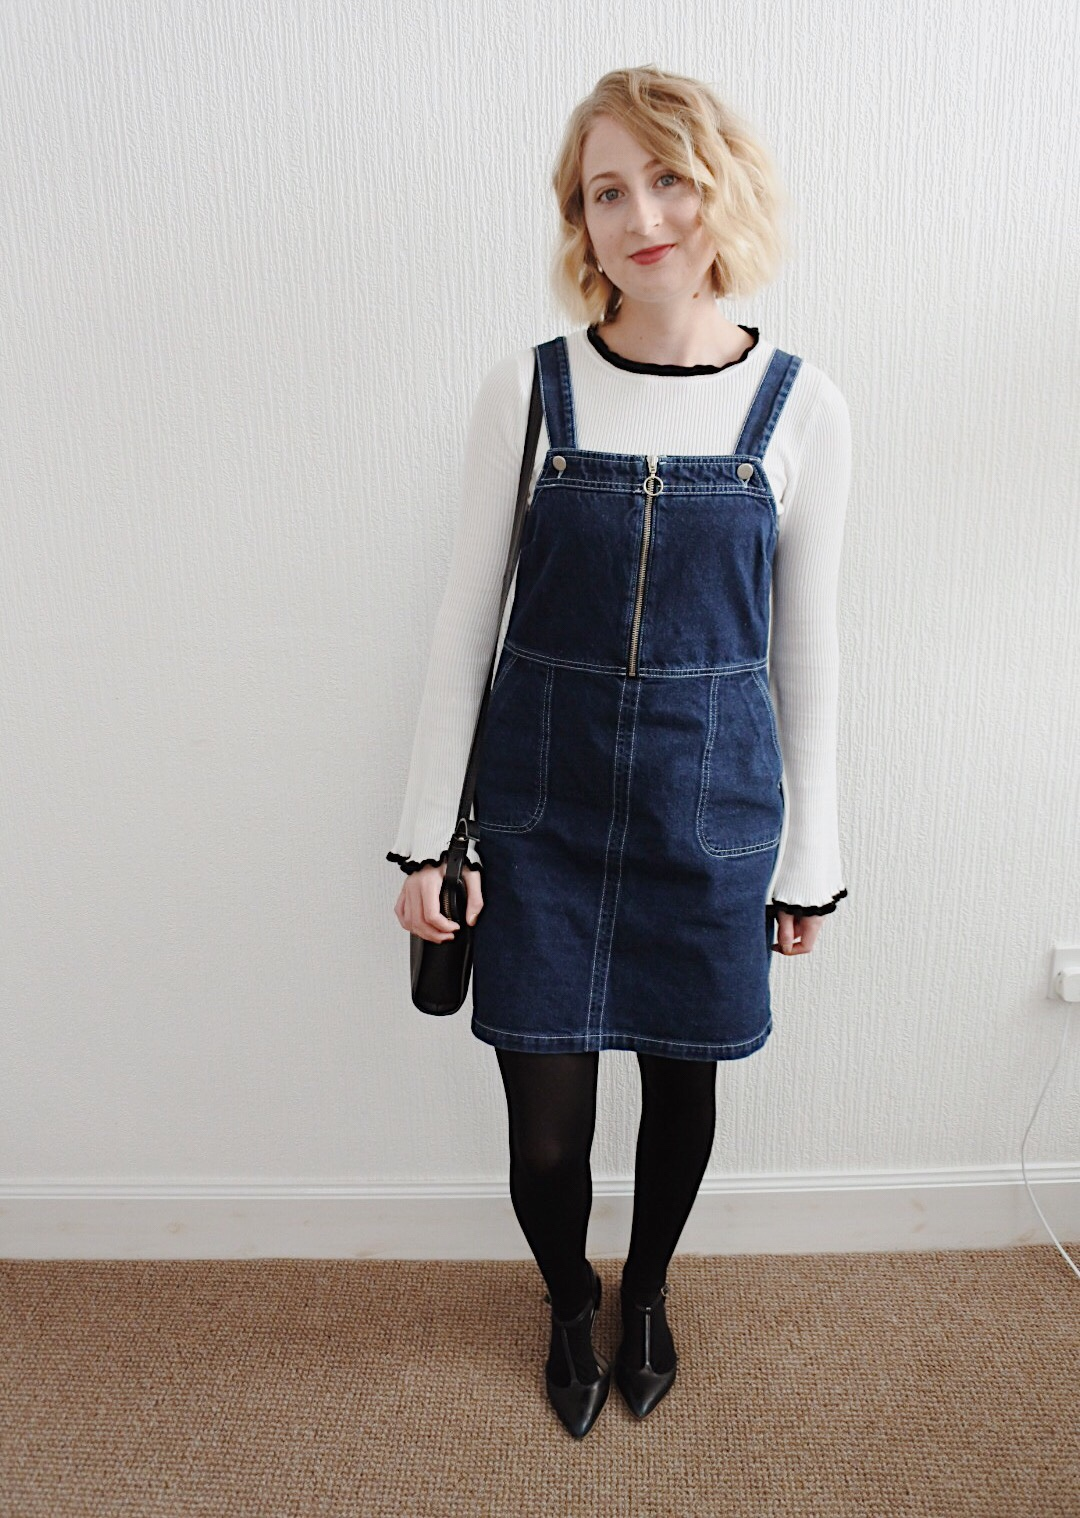 styling denim pinafore dress